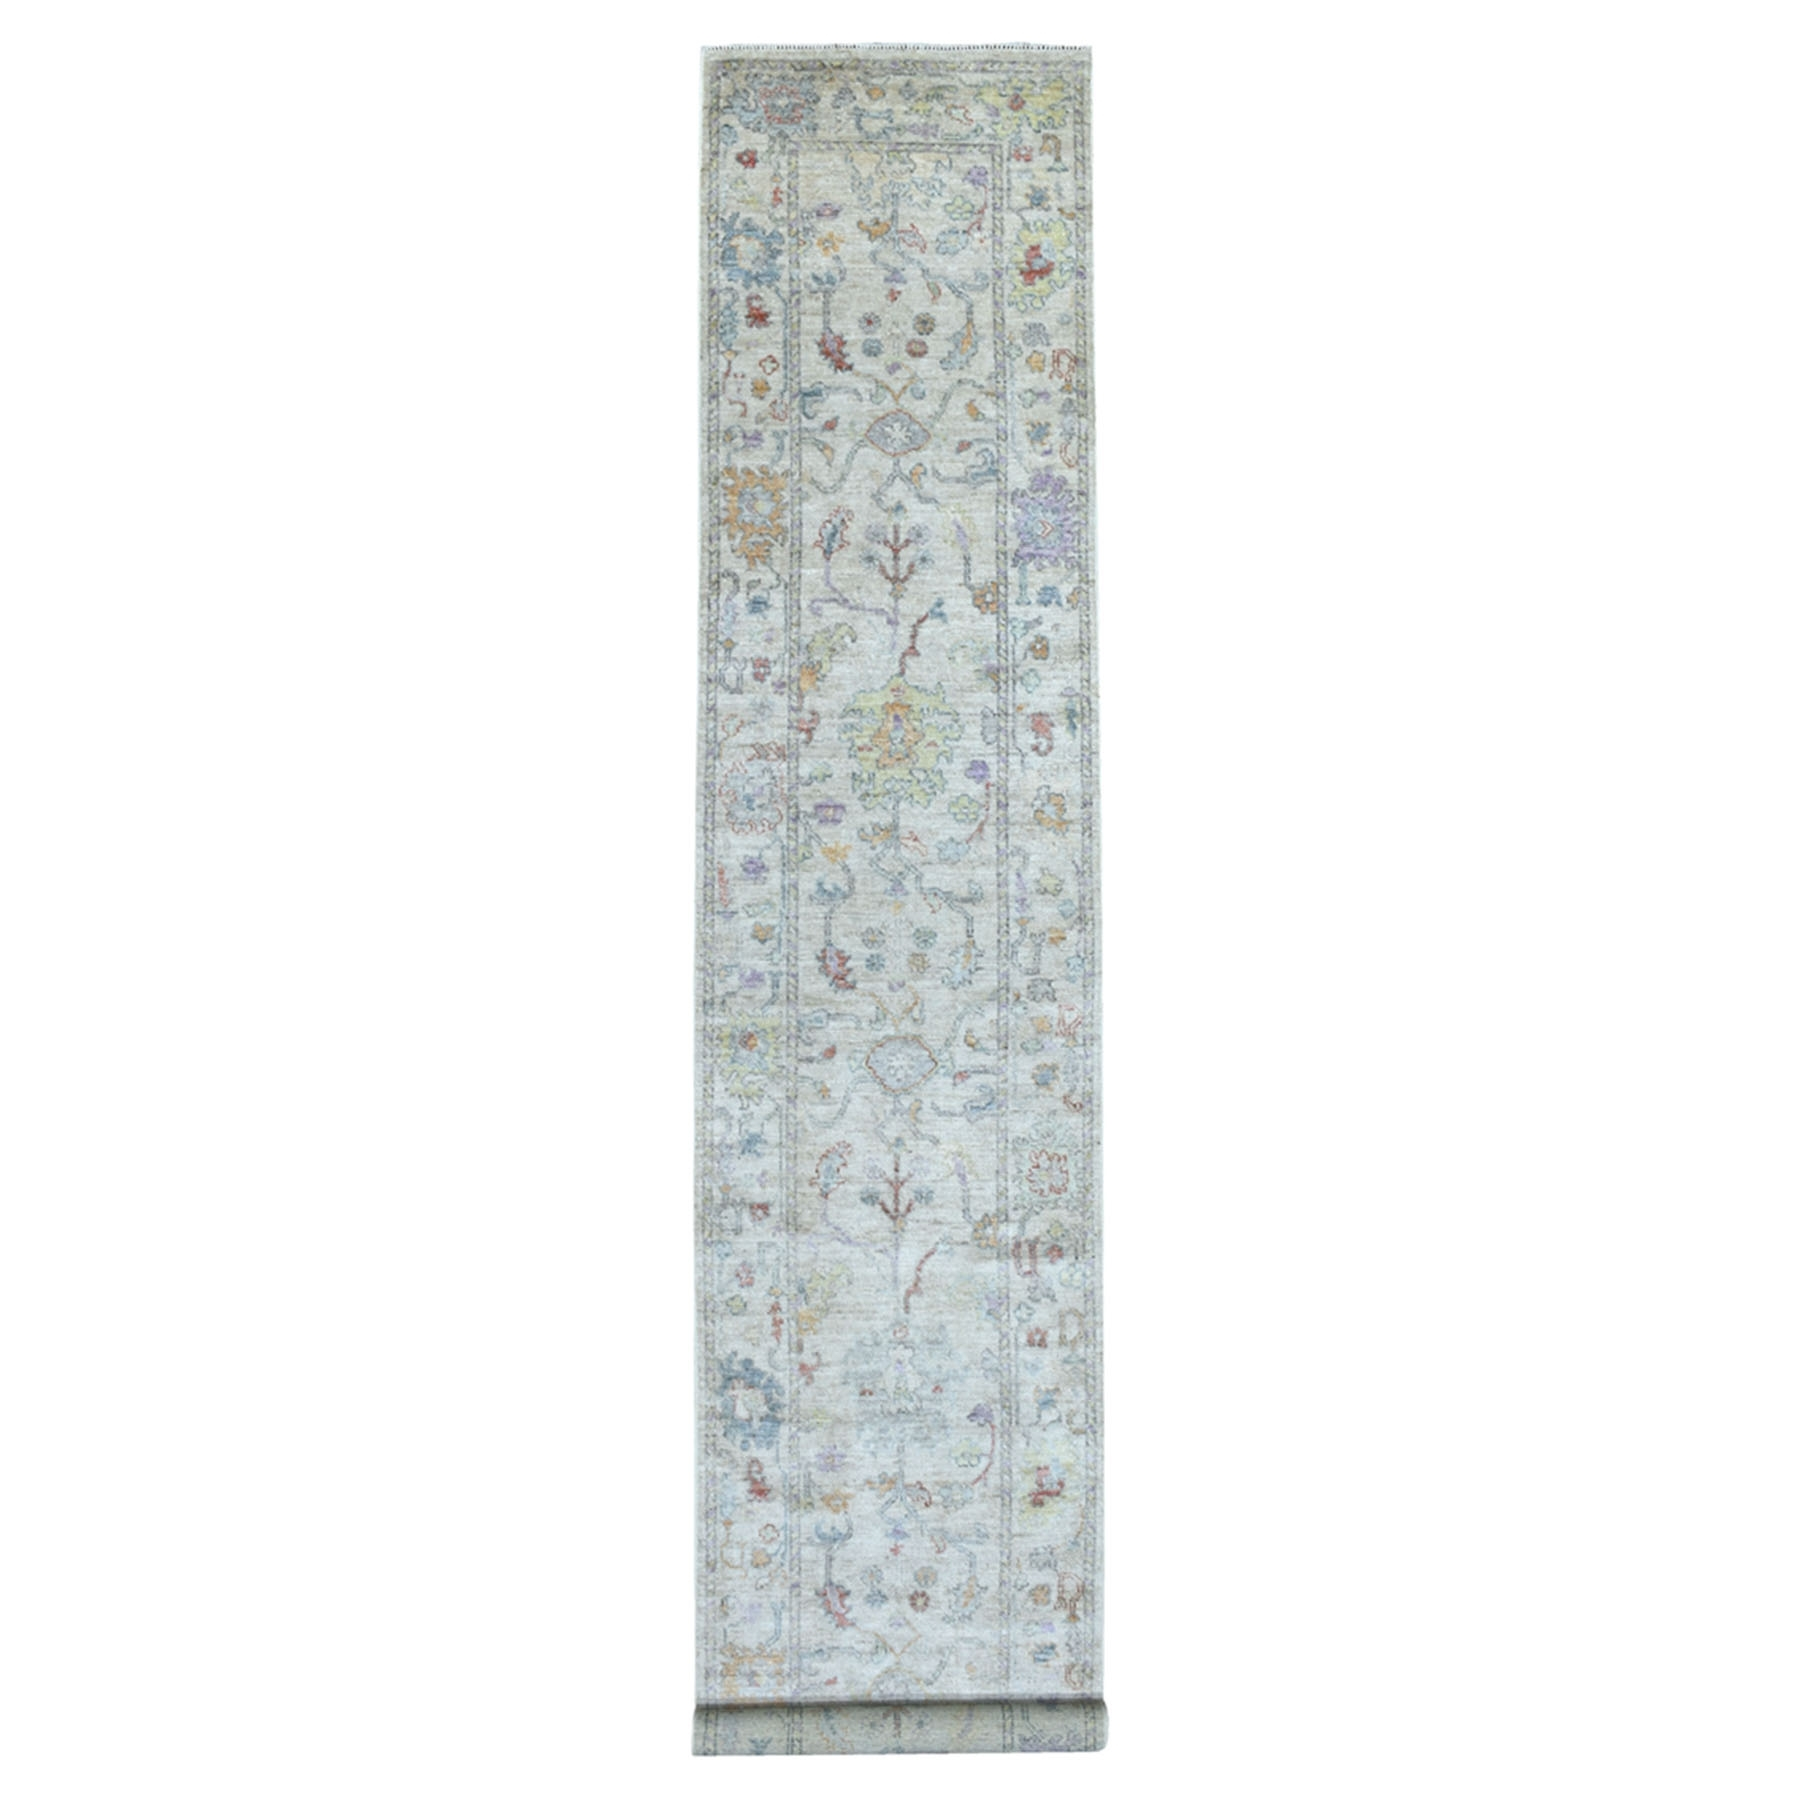 Agra And Turkish Collection Hand Knotted Grey Rug No: 1135194